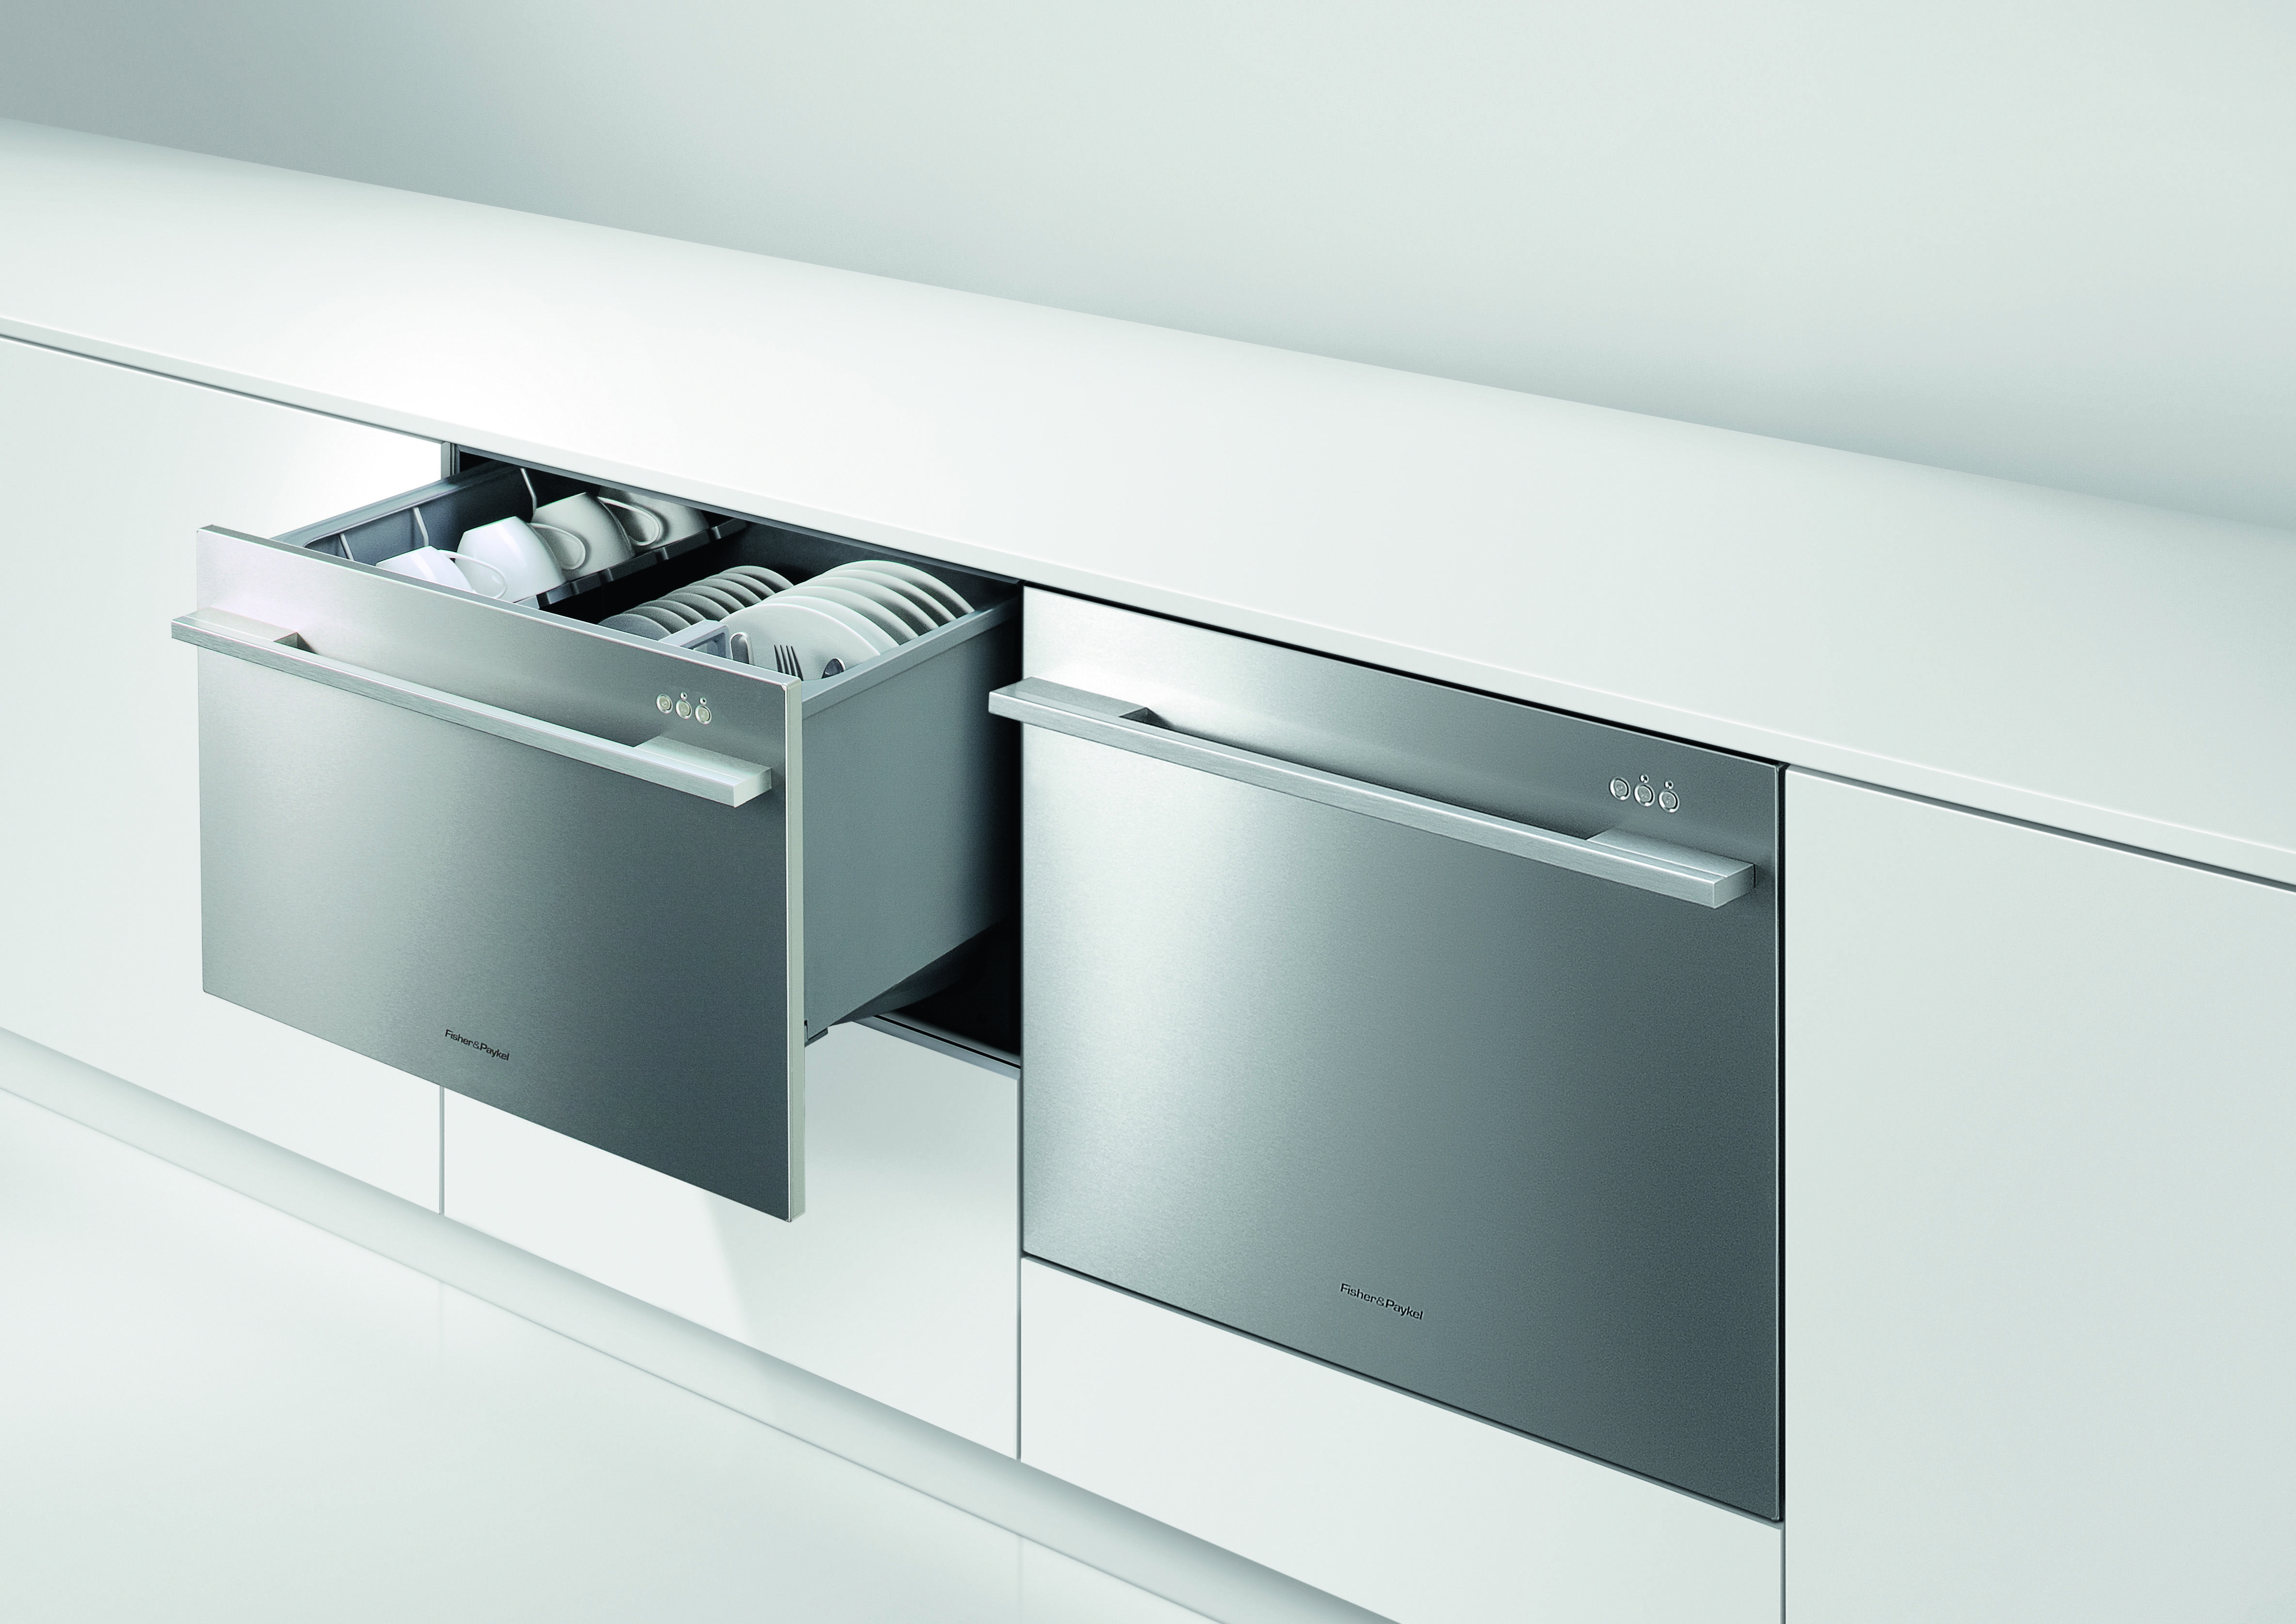 equipment compact sink paykel kitchen marvelous fisher double for xfile panel undercounter and u dishwasher single trends popular best pict drawer our ready new commercial under